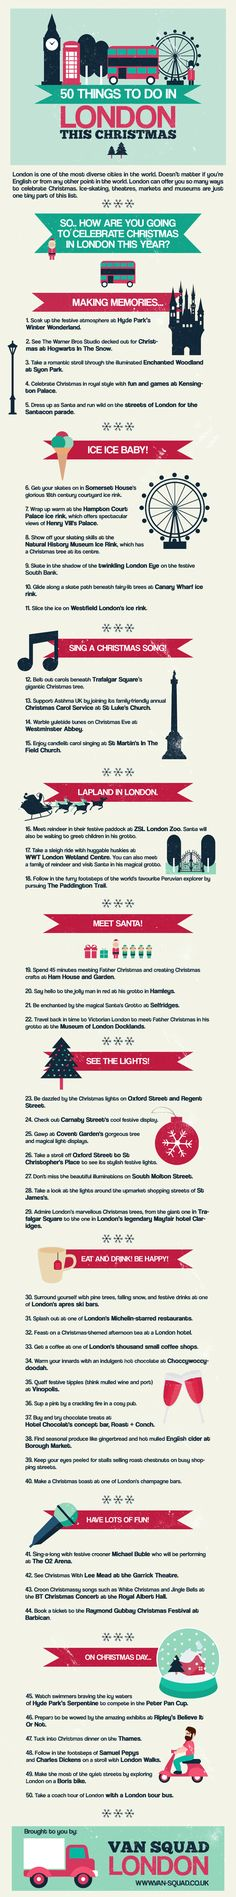 50 Things You Can Do in London This Christmas  [by VanSquad -- via #tipsographic]. More at tipsographic.com